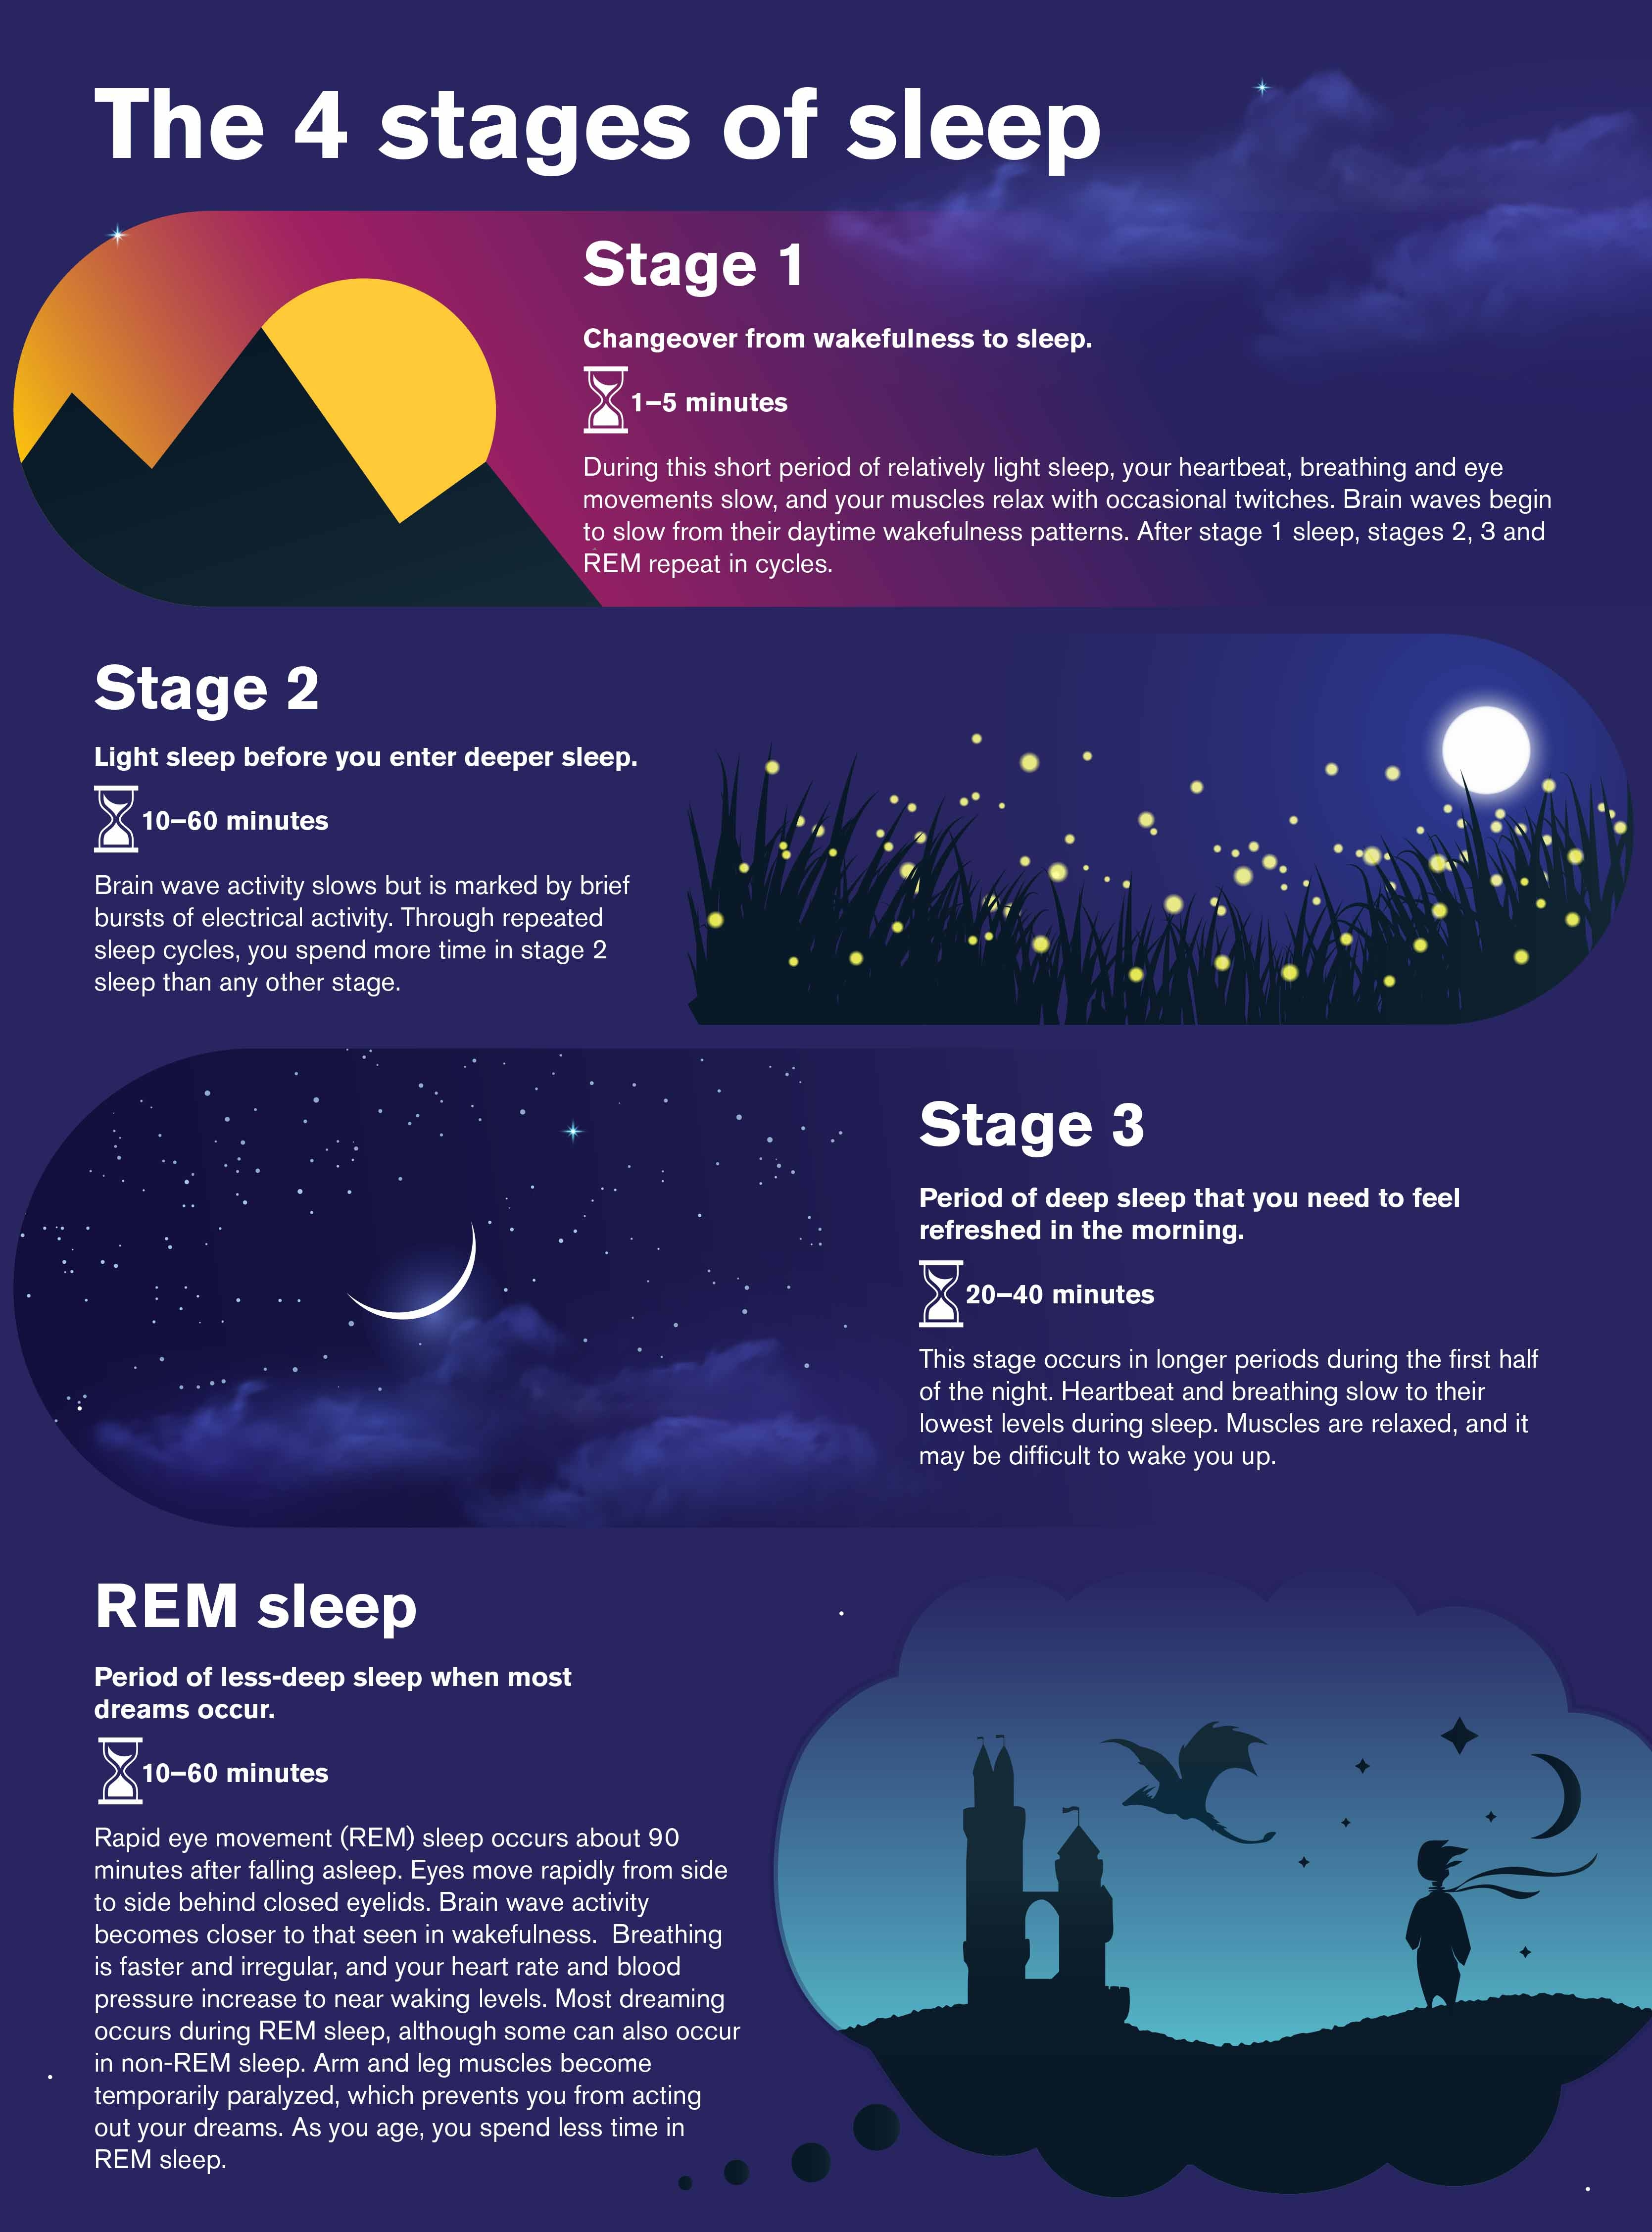 Illustration and text on 4 stages of sleep. Stage 1, changeover from wakefulness to sleep. Stage 2, light sleep before you enter deeper sleep. Stage 3, period of deep sleep that you need to feel rested. REM sleep, period of less-deep when you dream. sle